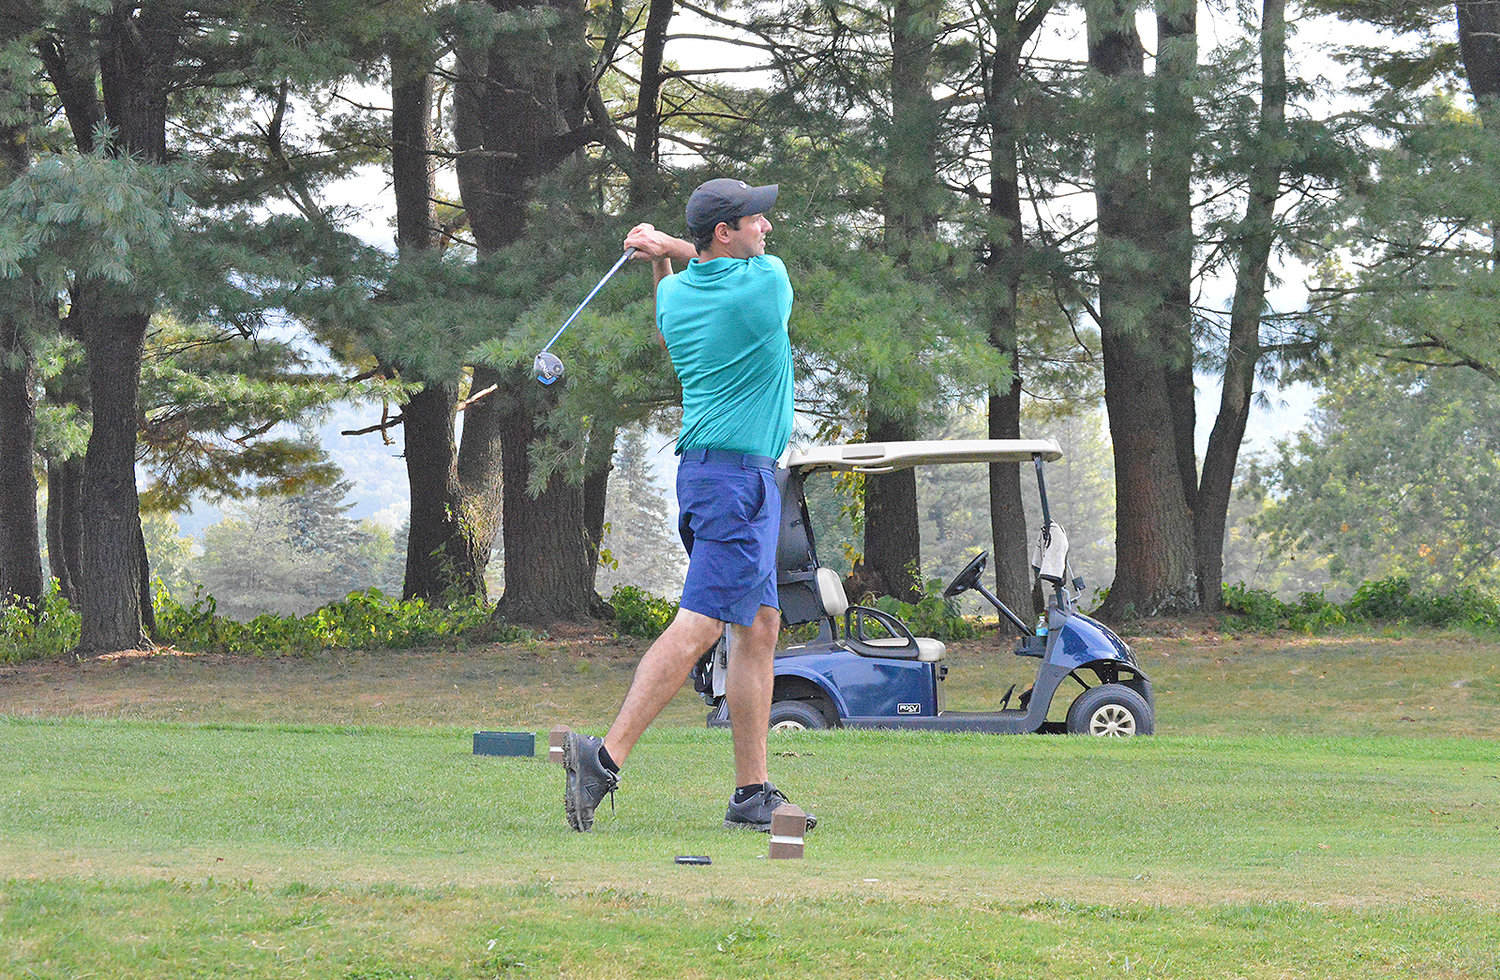 HOLDING THE FOLLOW THROUGH — A golfer holds his follow through on the sixth tee at MV Golf and Event Center on Thursday afternoon.